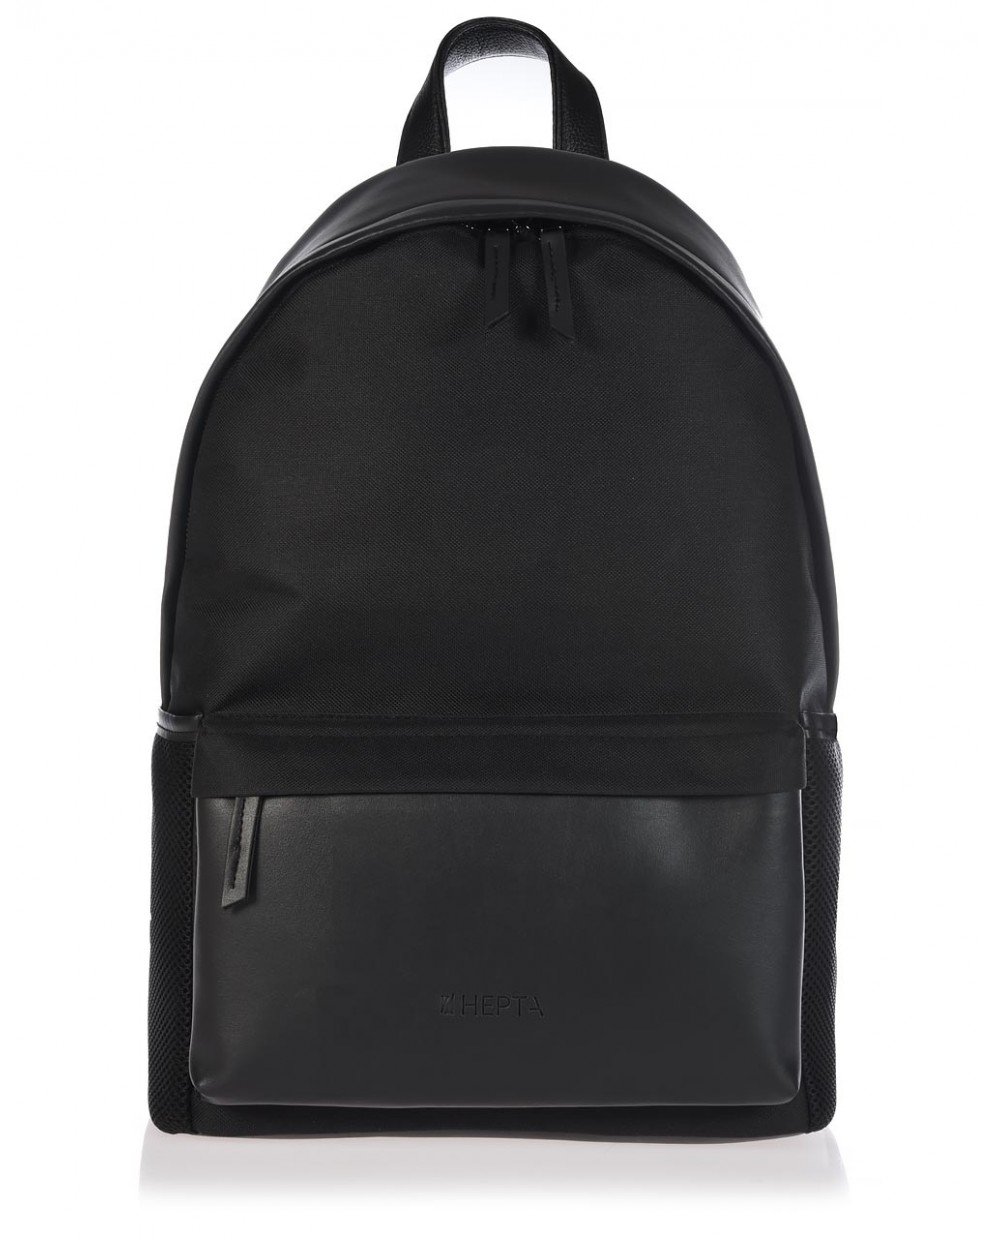 BACKPACK 9003